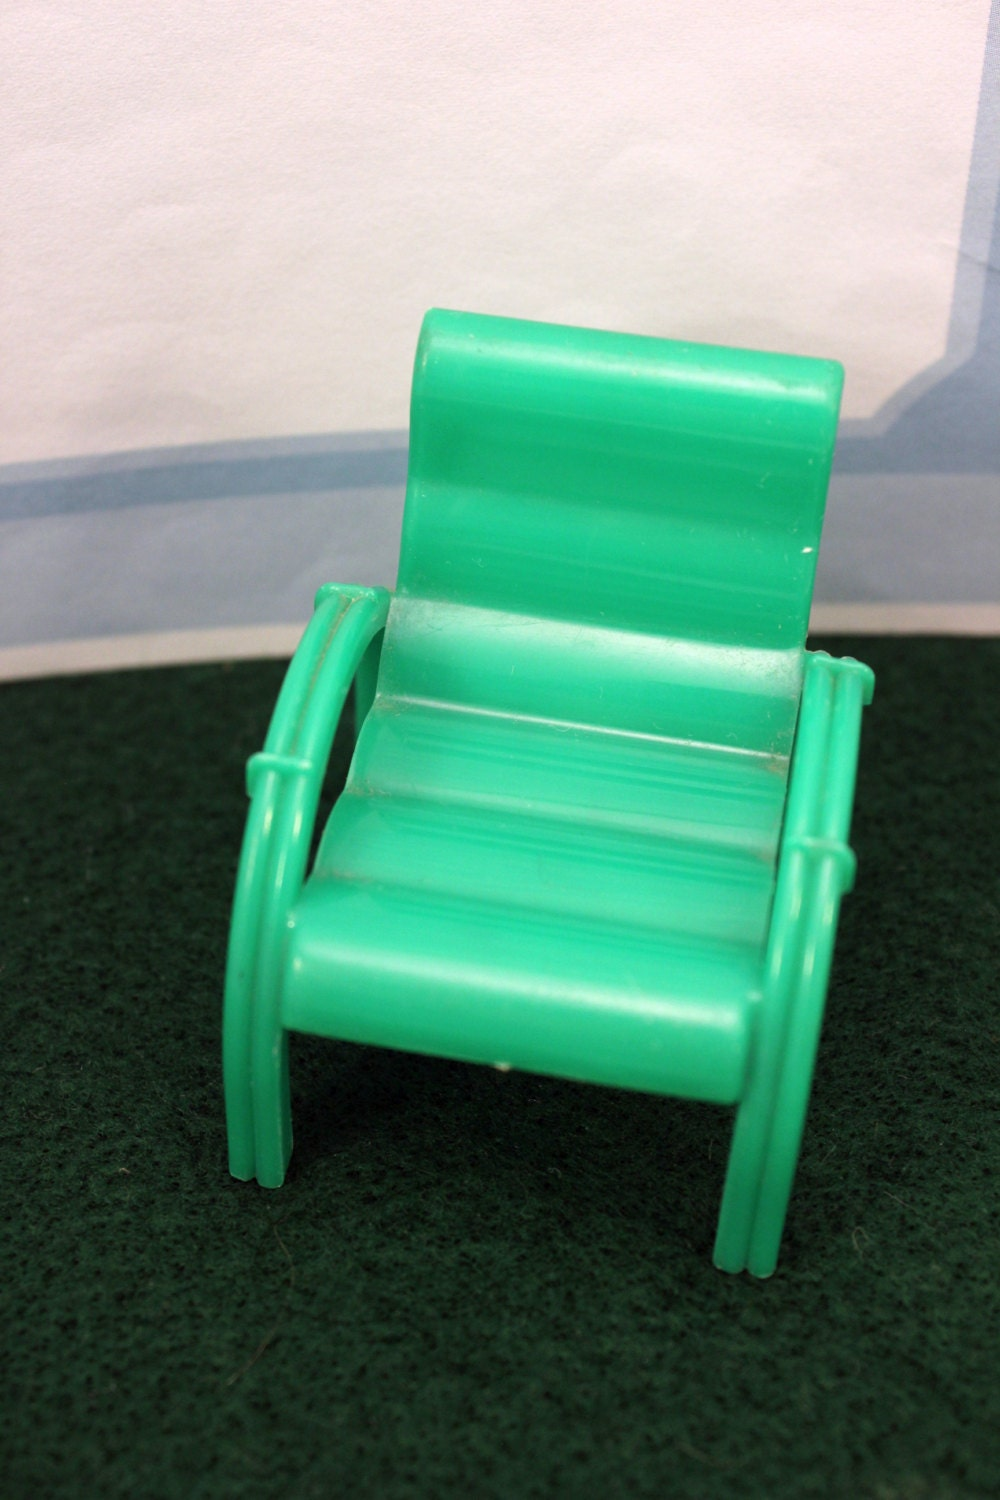 Marx Green Patio Chair Plastic Dollhouse Furniture Marxie